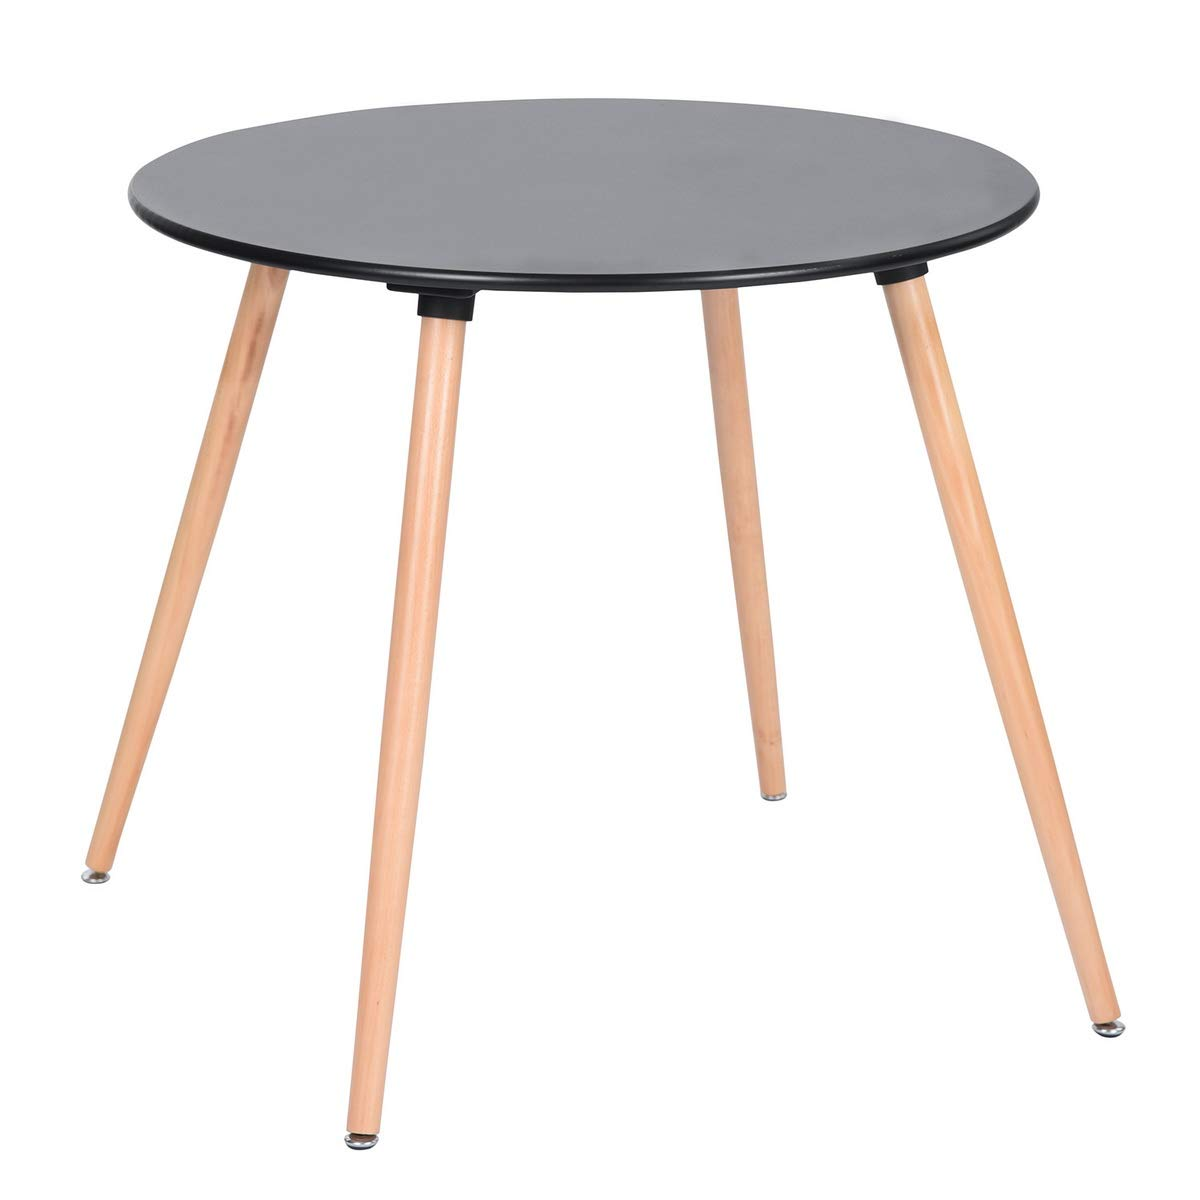 HOMY CASA Dining Table Round Coffee Table Mid Century Modern Kitchen Table Solid Wood Desk Black by HOMY CASA